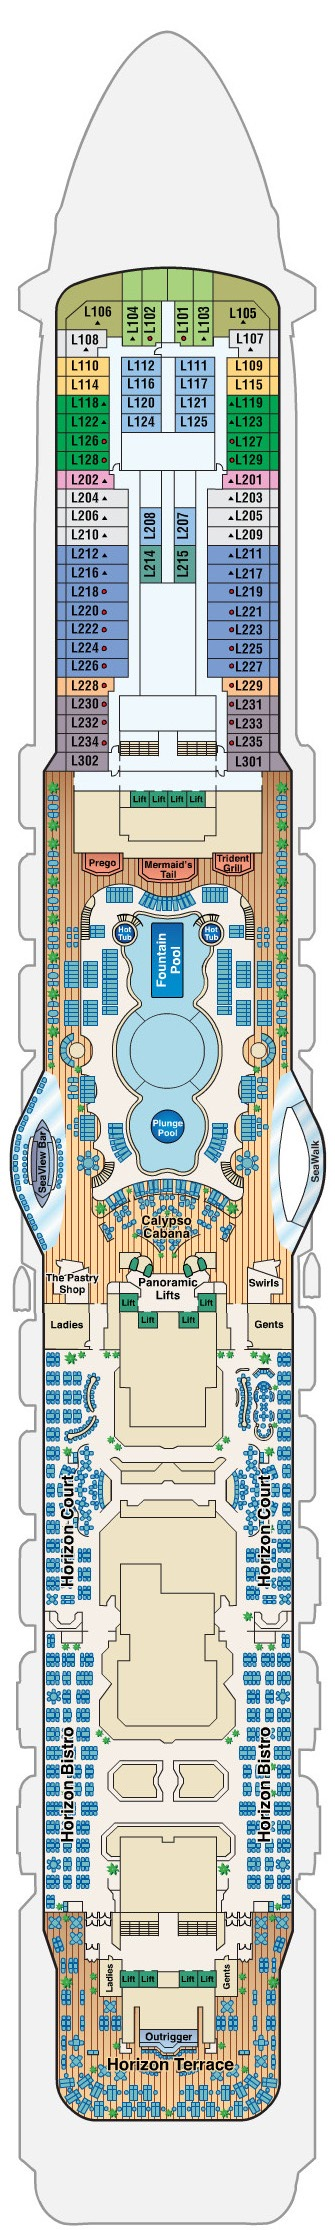 Royal Princess Deck 16 - Lido layout